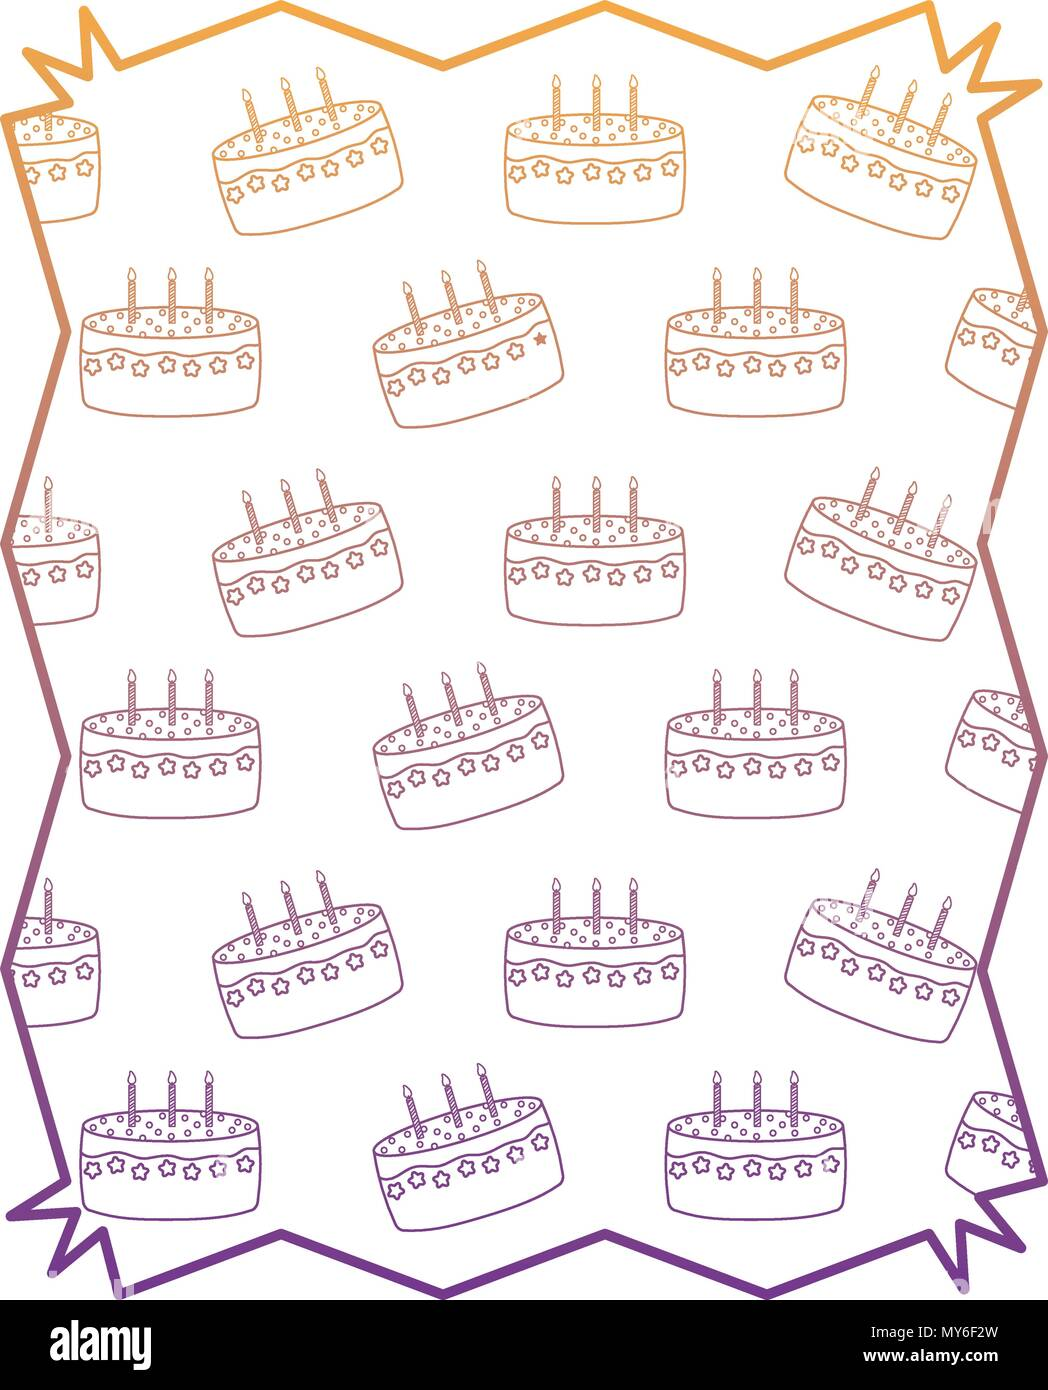 abstract frame with Birthday cake pattern over white background ...